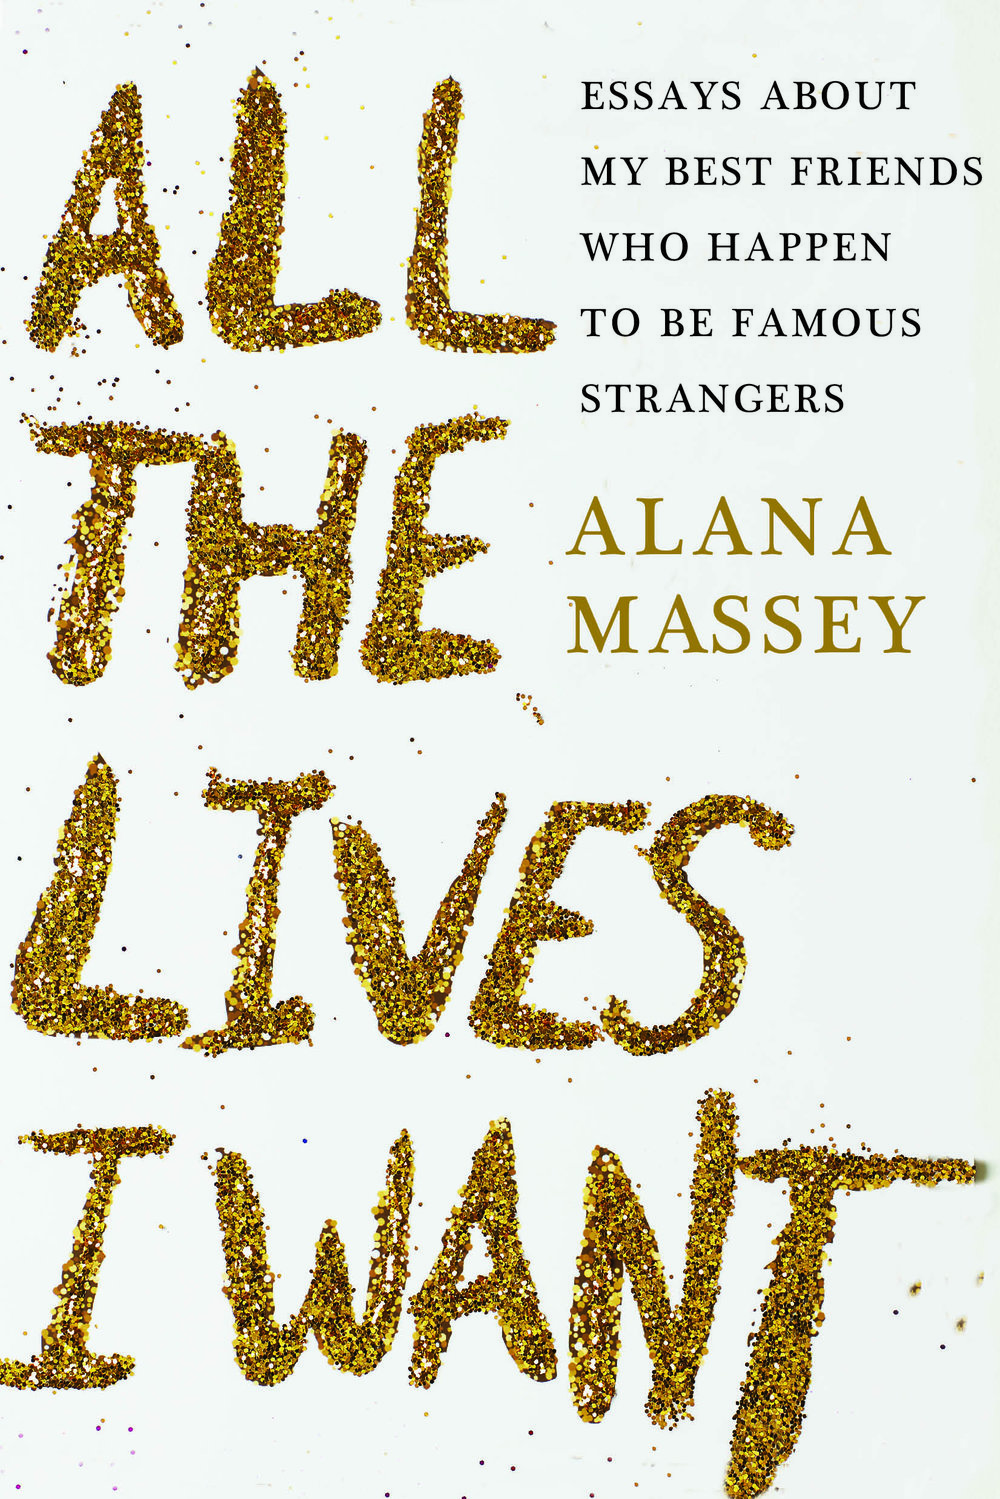 """You might have already read Alana Massey and not known it. She is the author of the """"Being Winona In A World Made for Gwyneths,"""" an explosive BuzzFeed essay that landed her a literary agent in less than 24 hours, or perhaps you've read """"Against Chill,"""" a takedown of the titular """"garbage virtue that will destroy the species."""" In All the Lives I Want, Massey bridges the gap from Sylvia Plath to Amber Rose, and all the high- and lowbrow female celebrities in between with her deeply contemporary voice and sense of humor. """"These women — often the subjects of great scrutiny by celebrity magazines — prompt the author to ponder, with wit and keen self-reflection, what our feelings about them reveal about us,"""" Kirkus Review writes."""